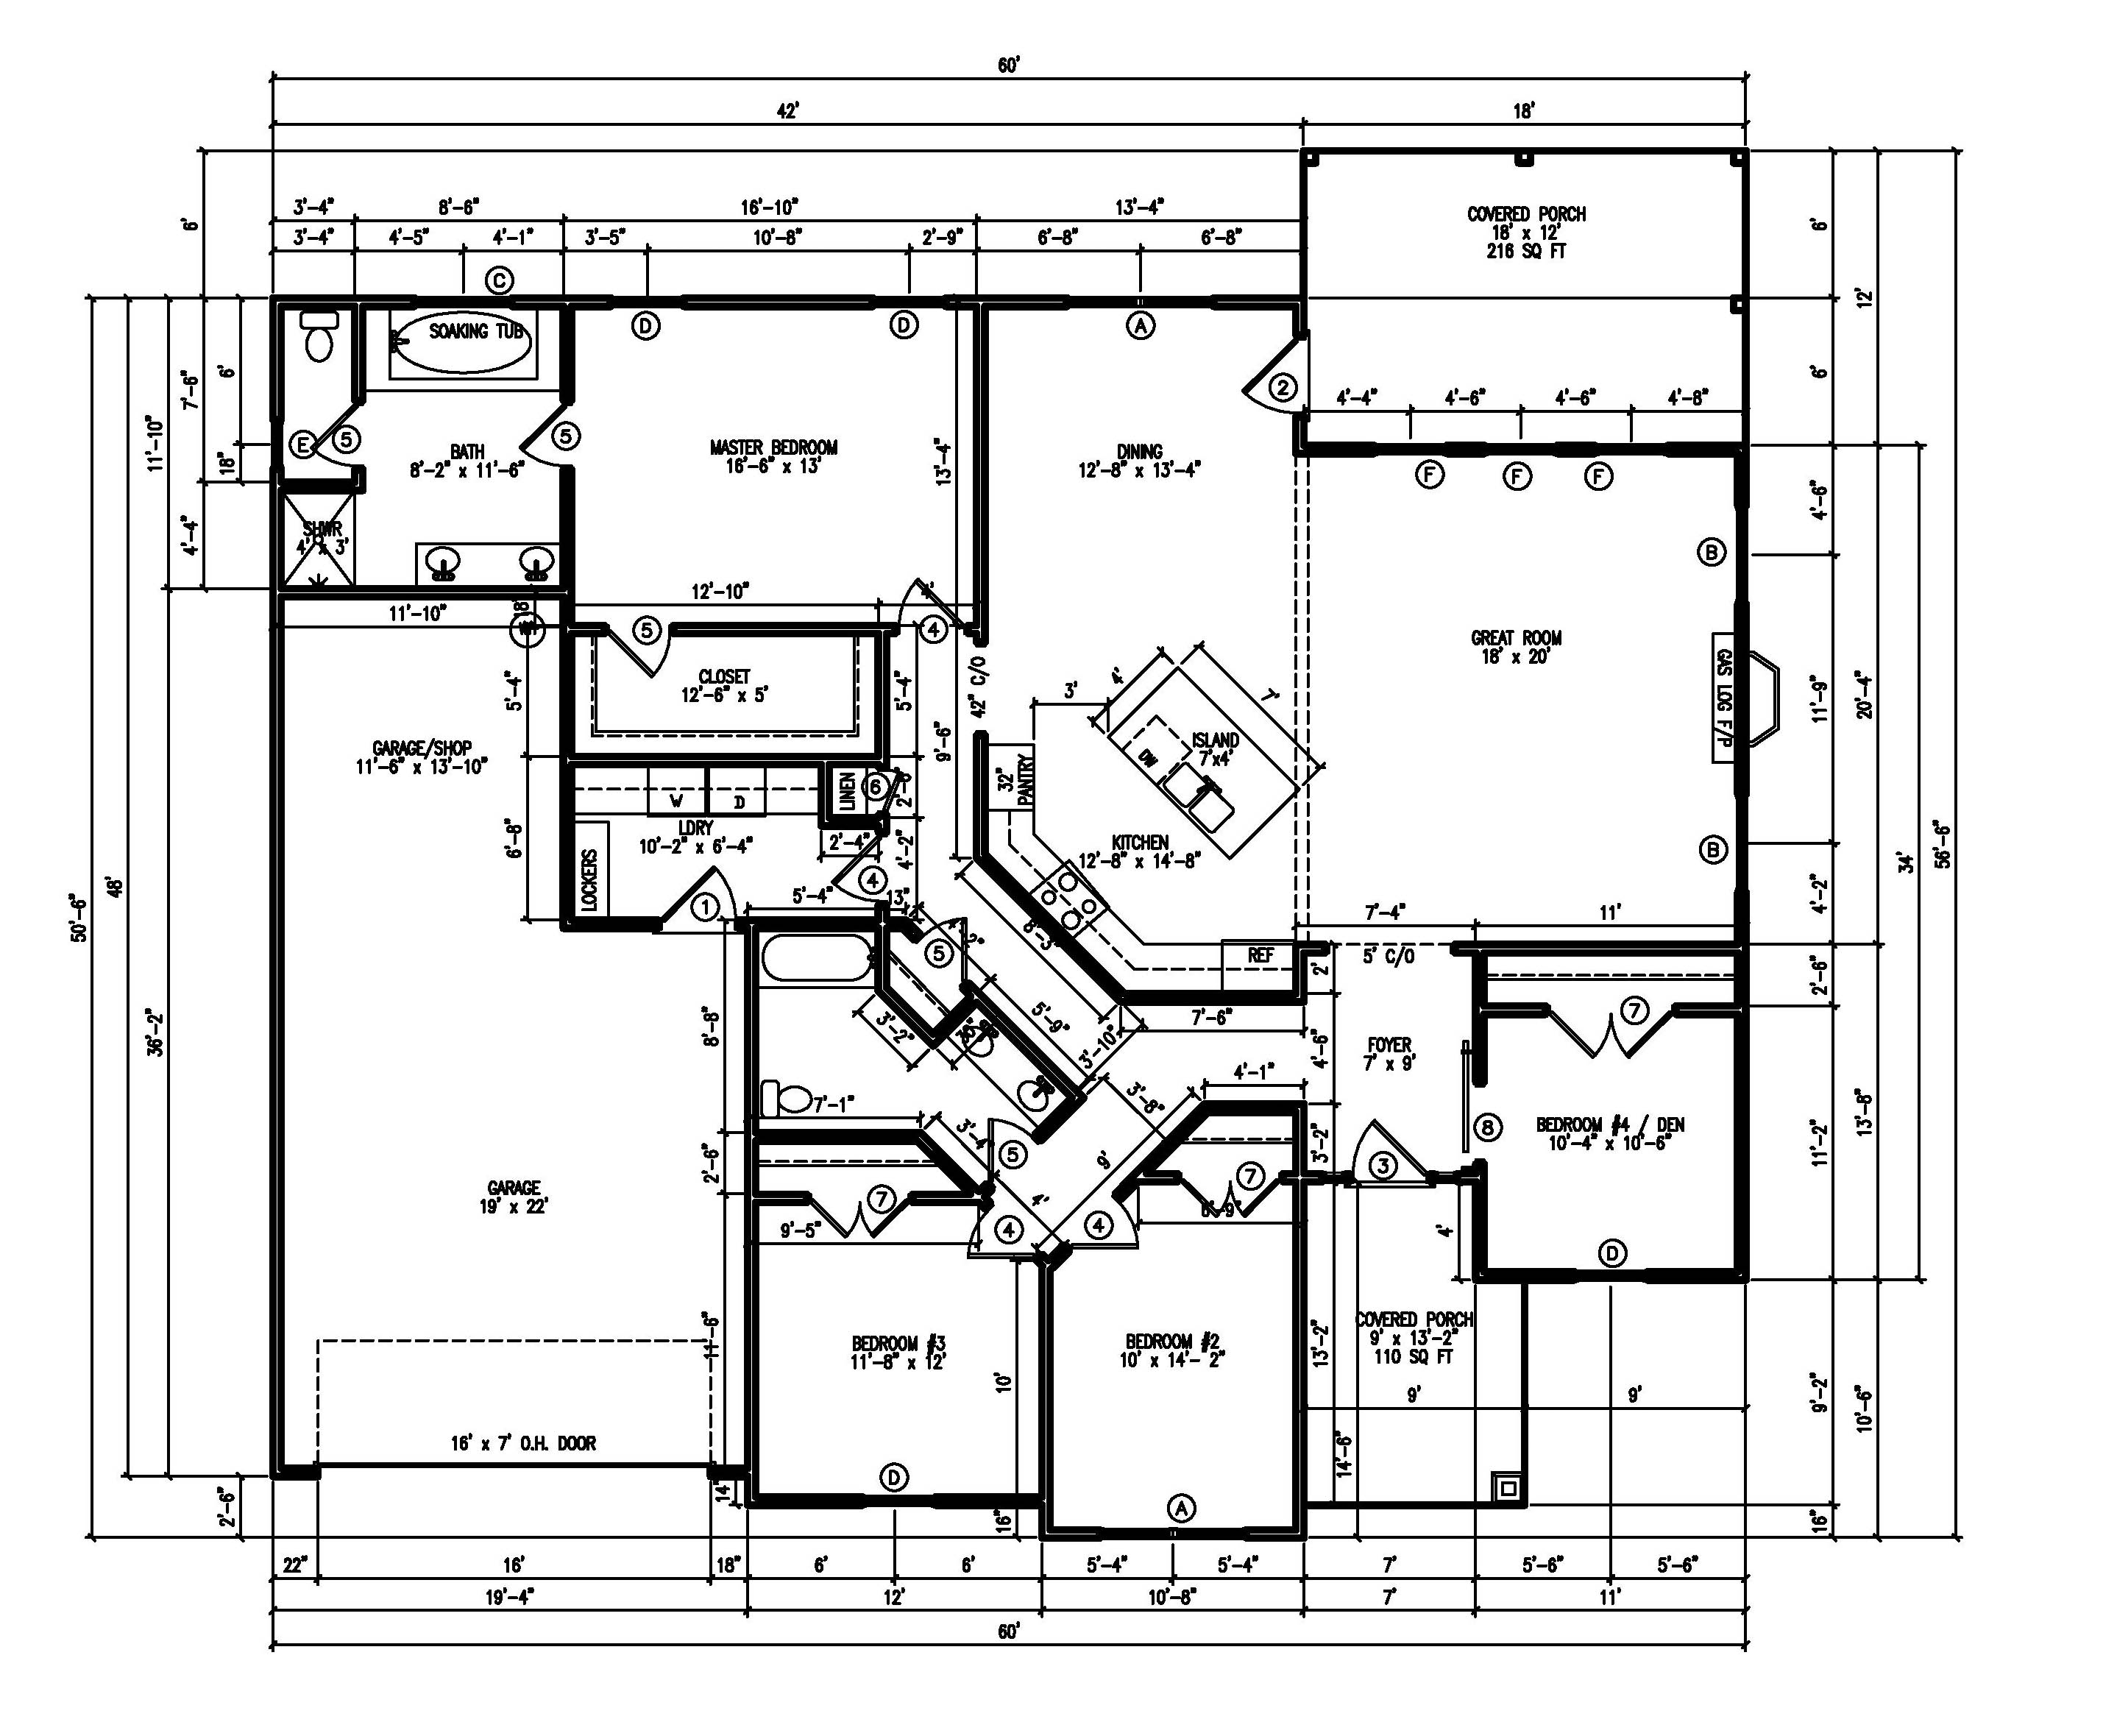 house plans layout (1 of 1)